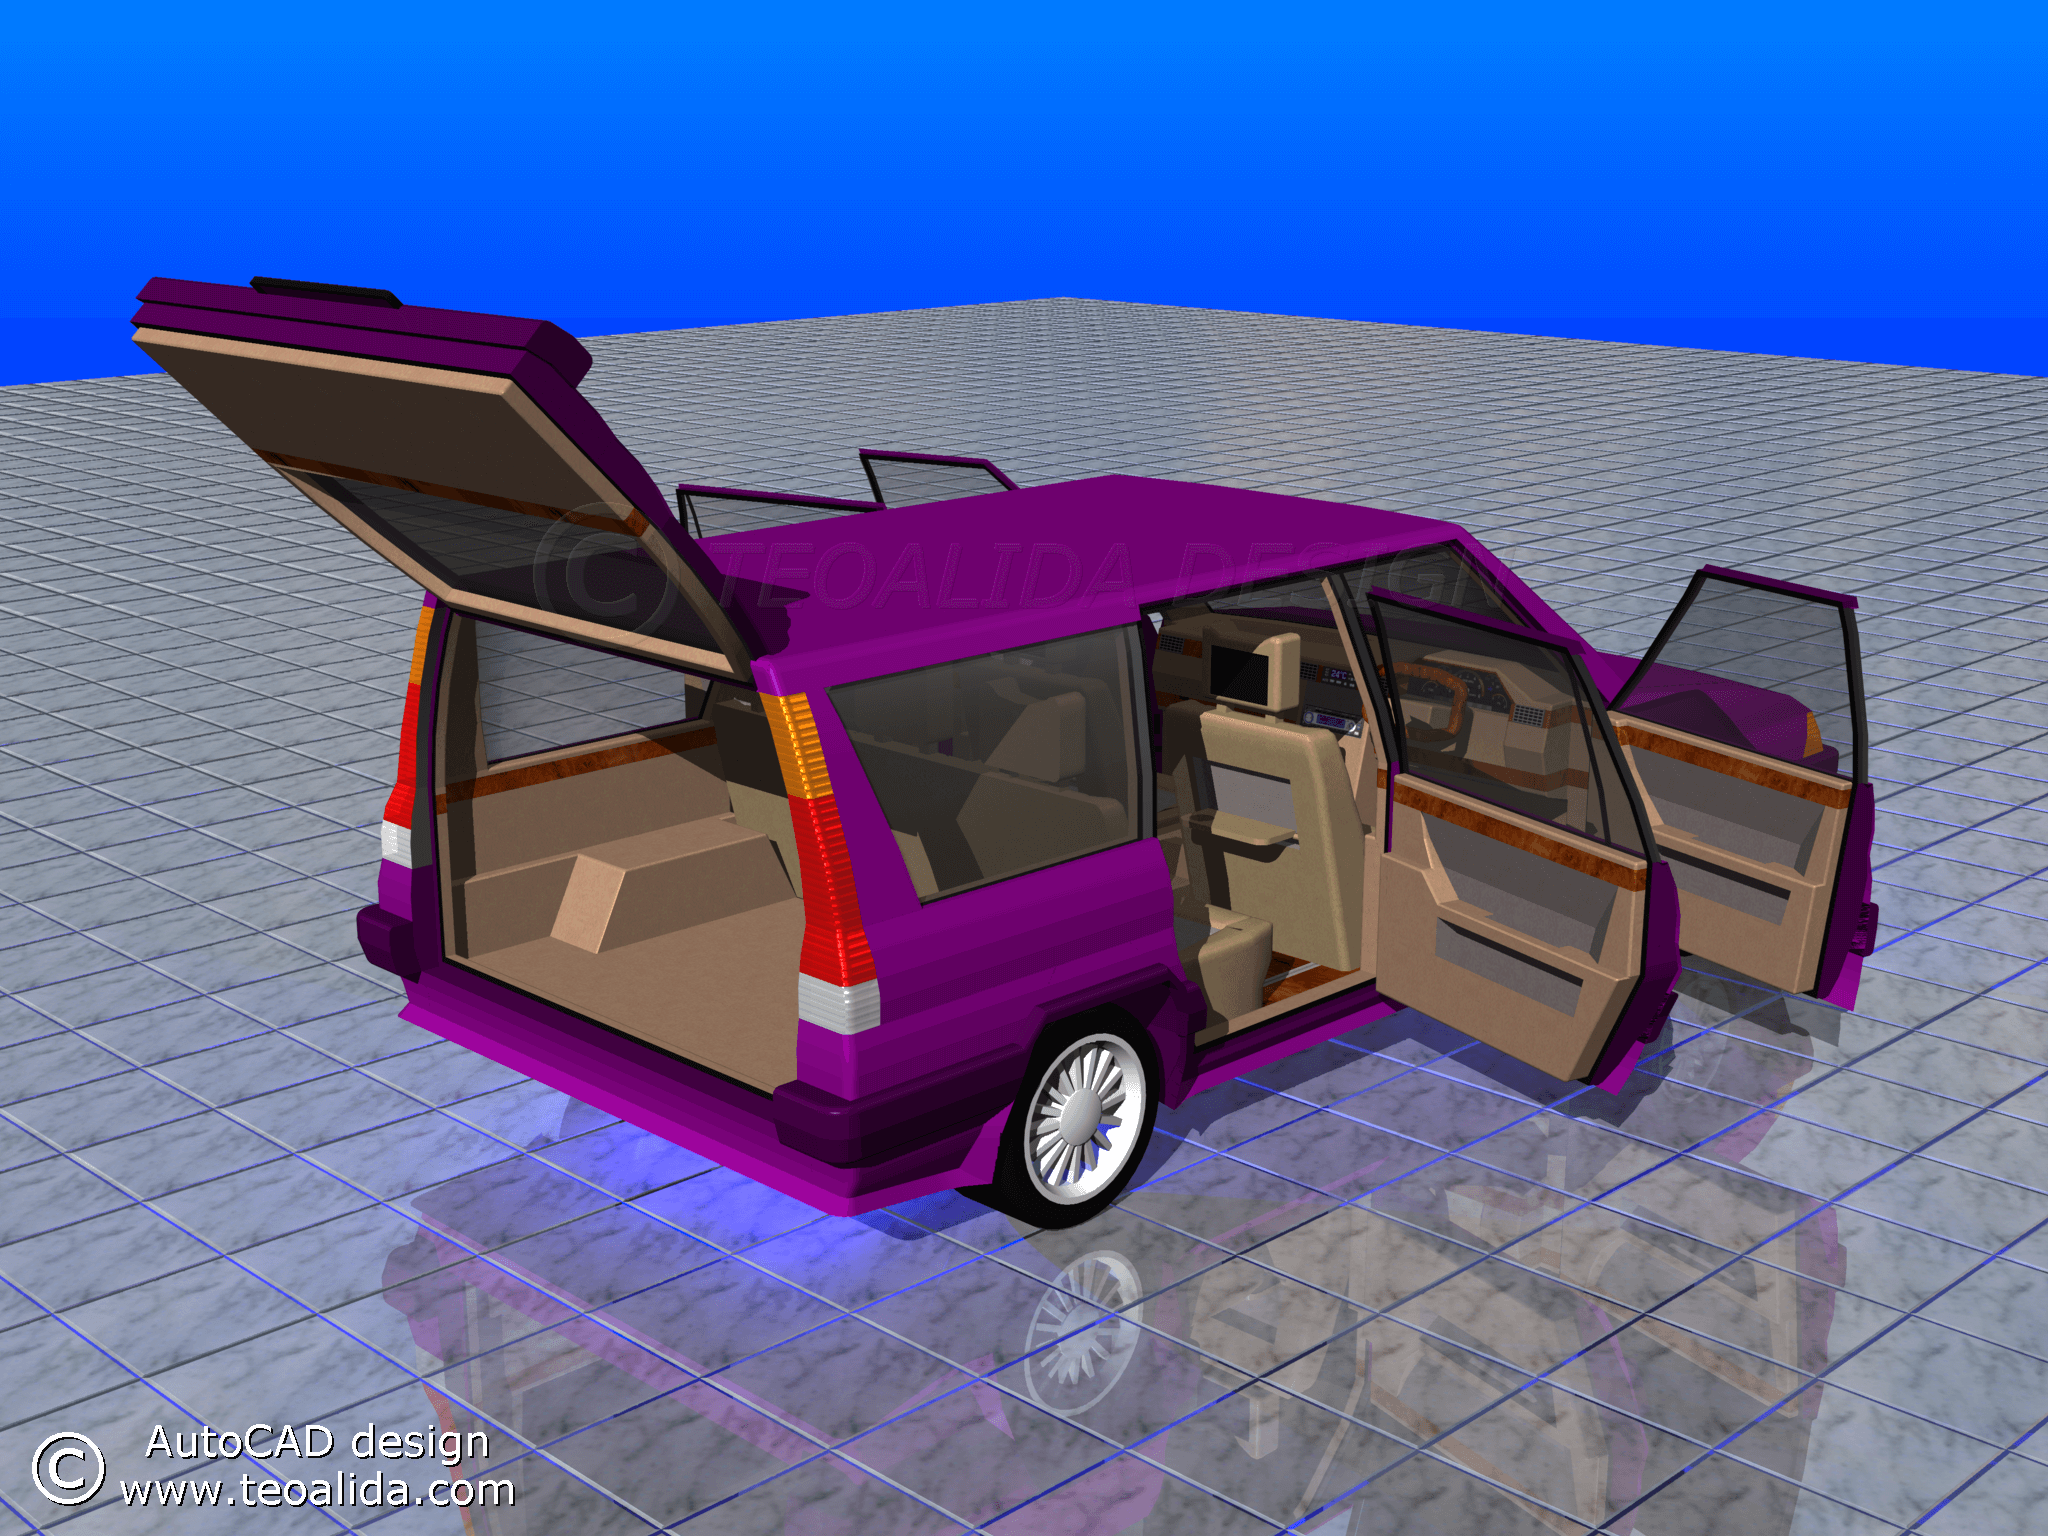 car design software car designing software 3d car 3d design online AutoCAD 3D model of a car, back u0026 interior view